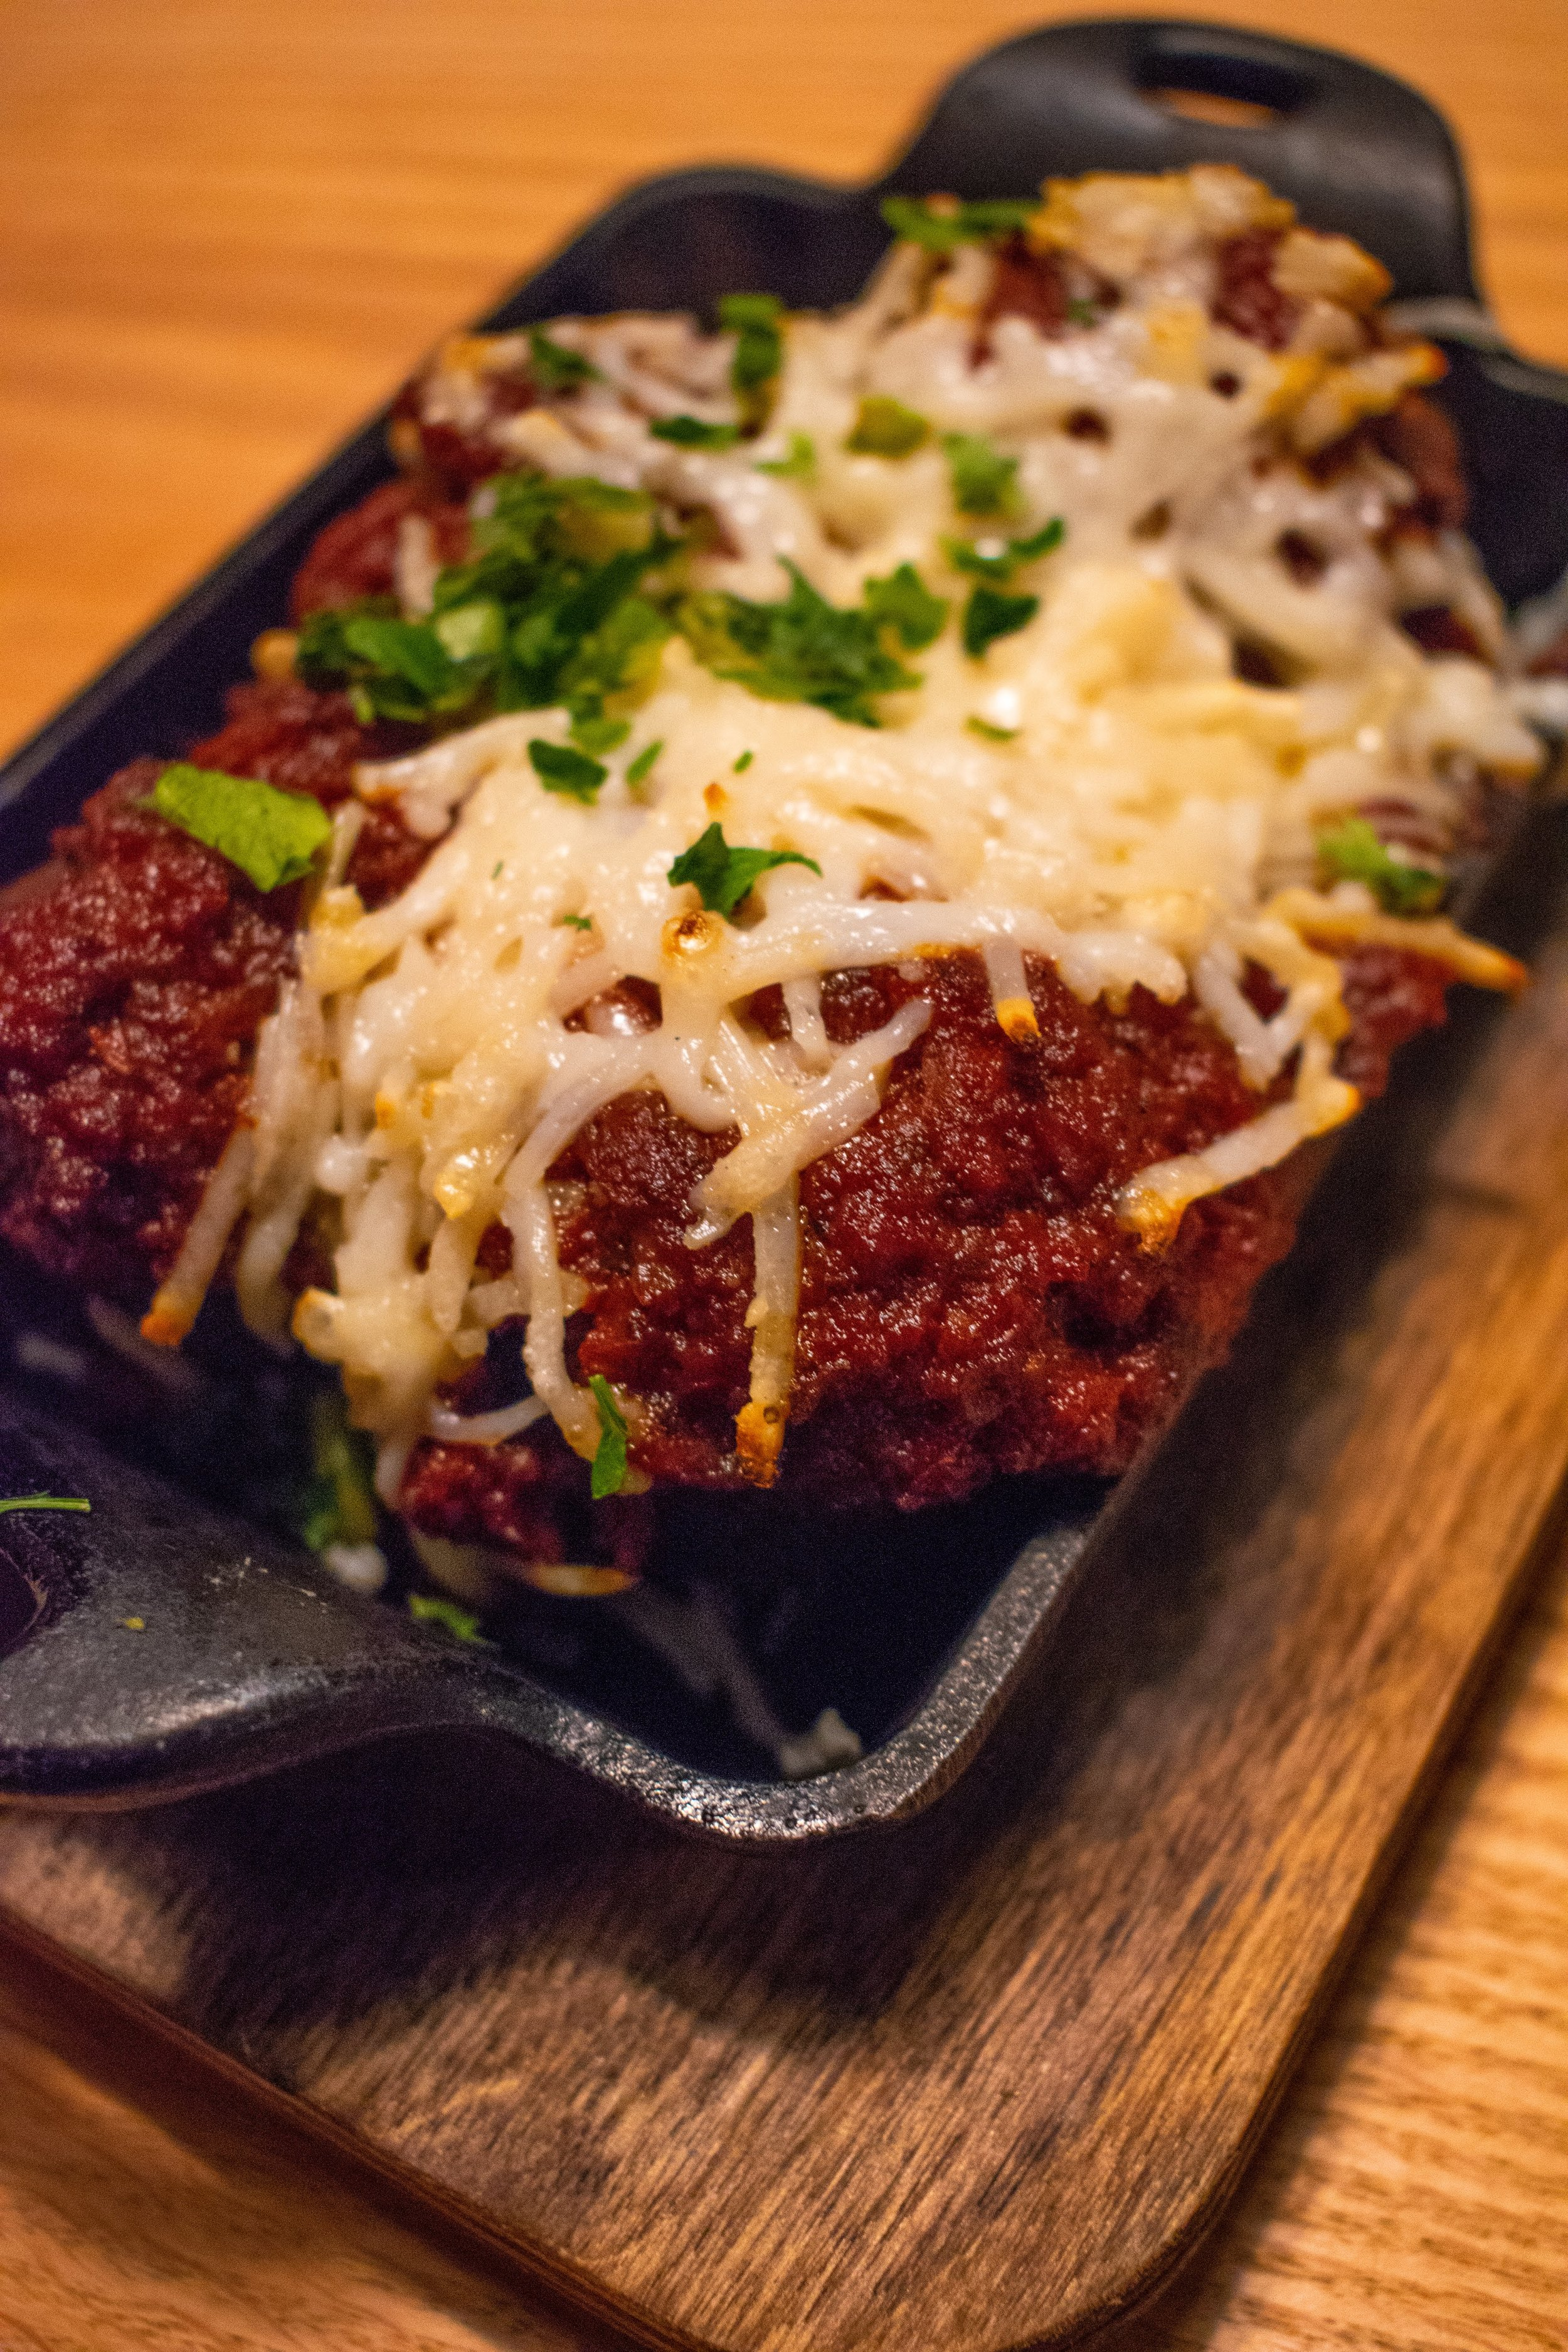 Uprooted-Traveler-Hugo's-Pizzeria-St-Louis-vegan-meatball-pizza-appetizer.jpg